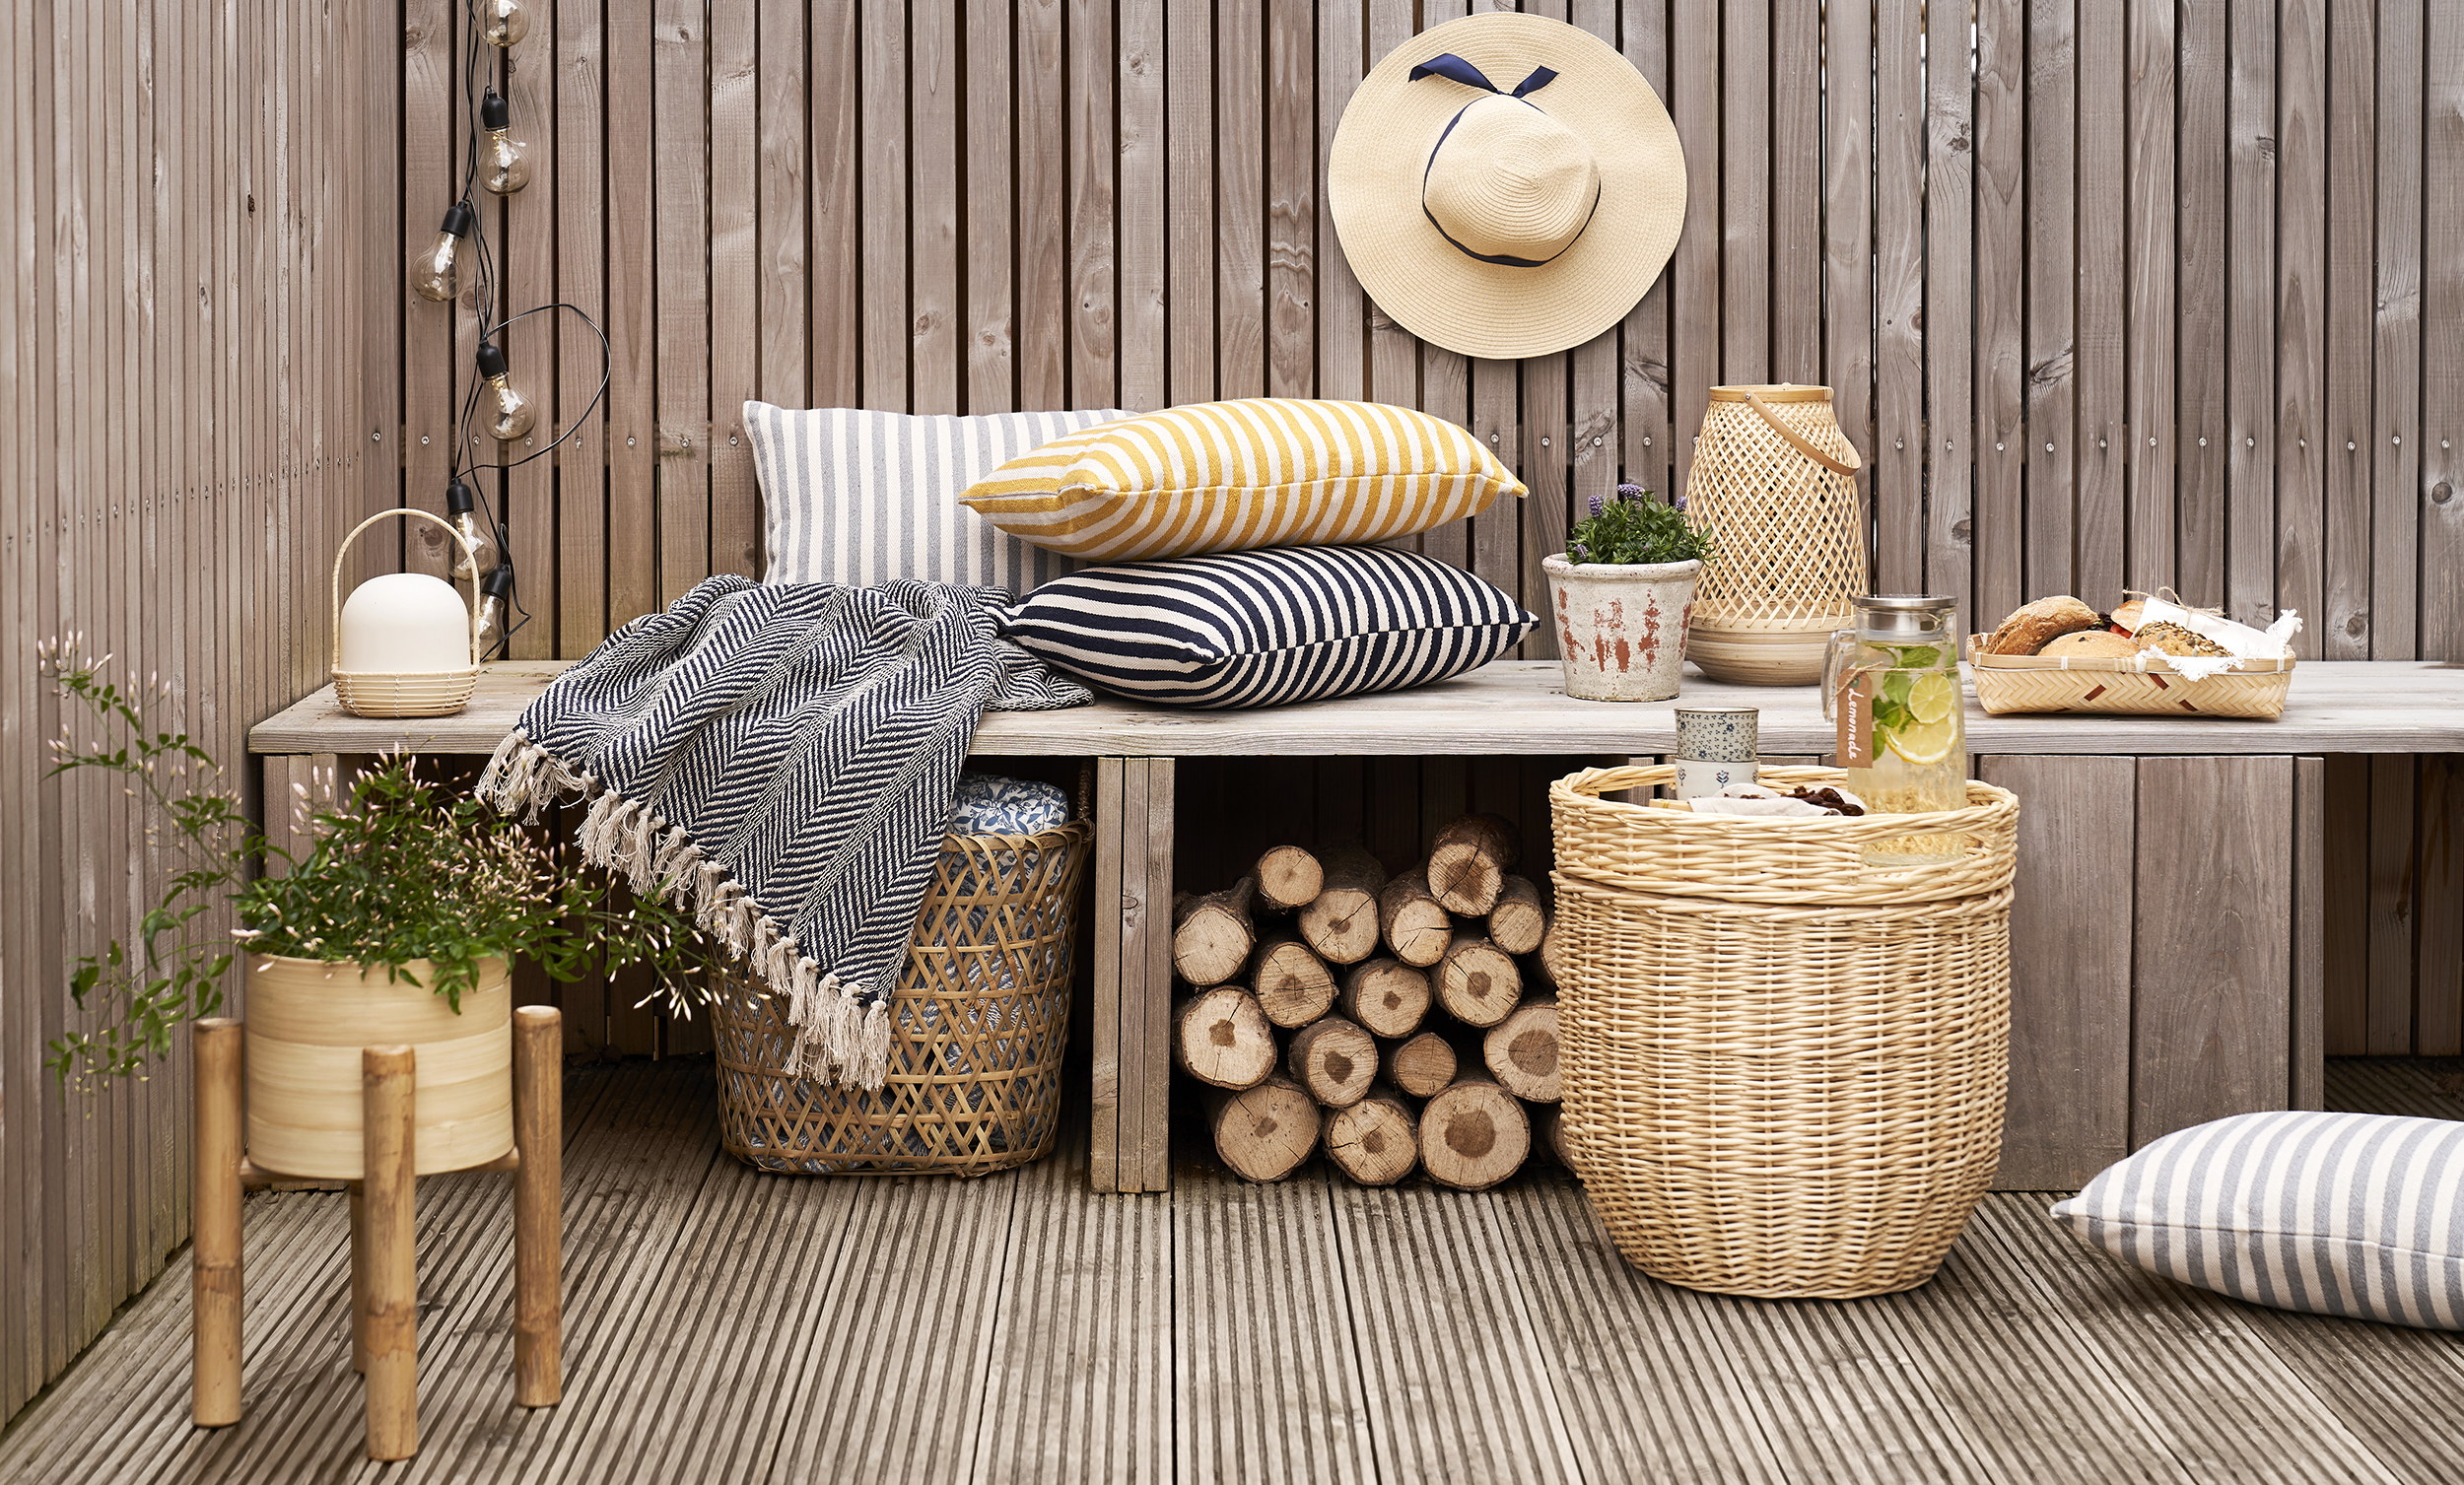 SØSTRENE GRENE LAUNCHES NEW OUTDOOR LIVING COLLECTION 2020